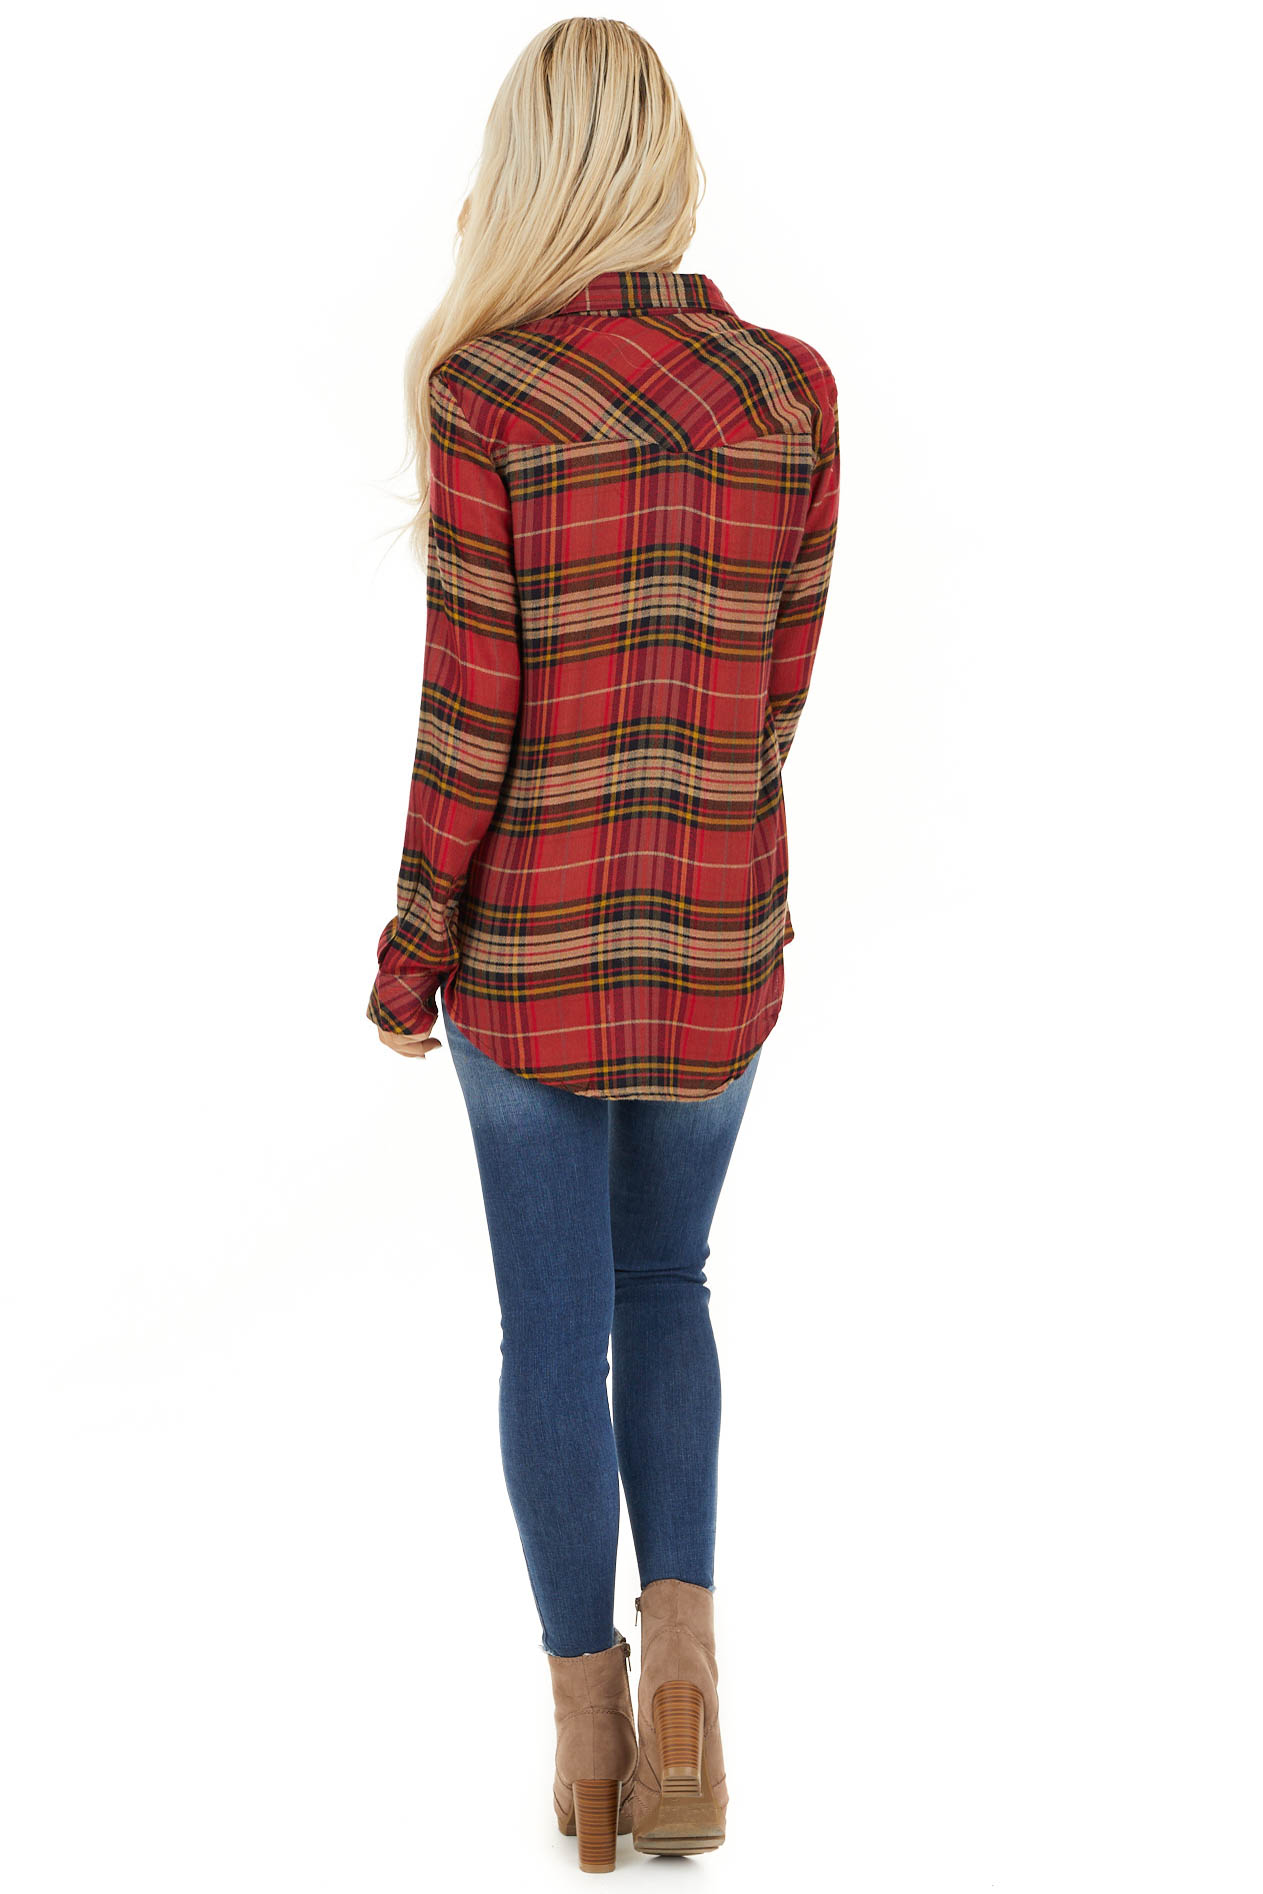 Candy Apple Red Plaid Button Up Top with Chest Pocket back full body